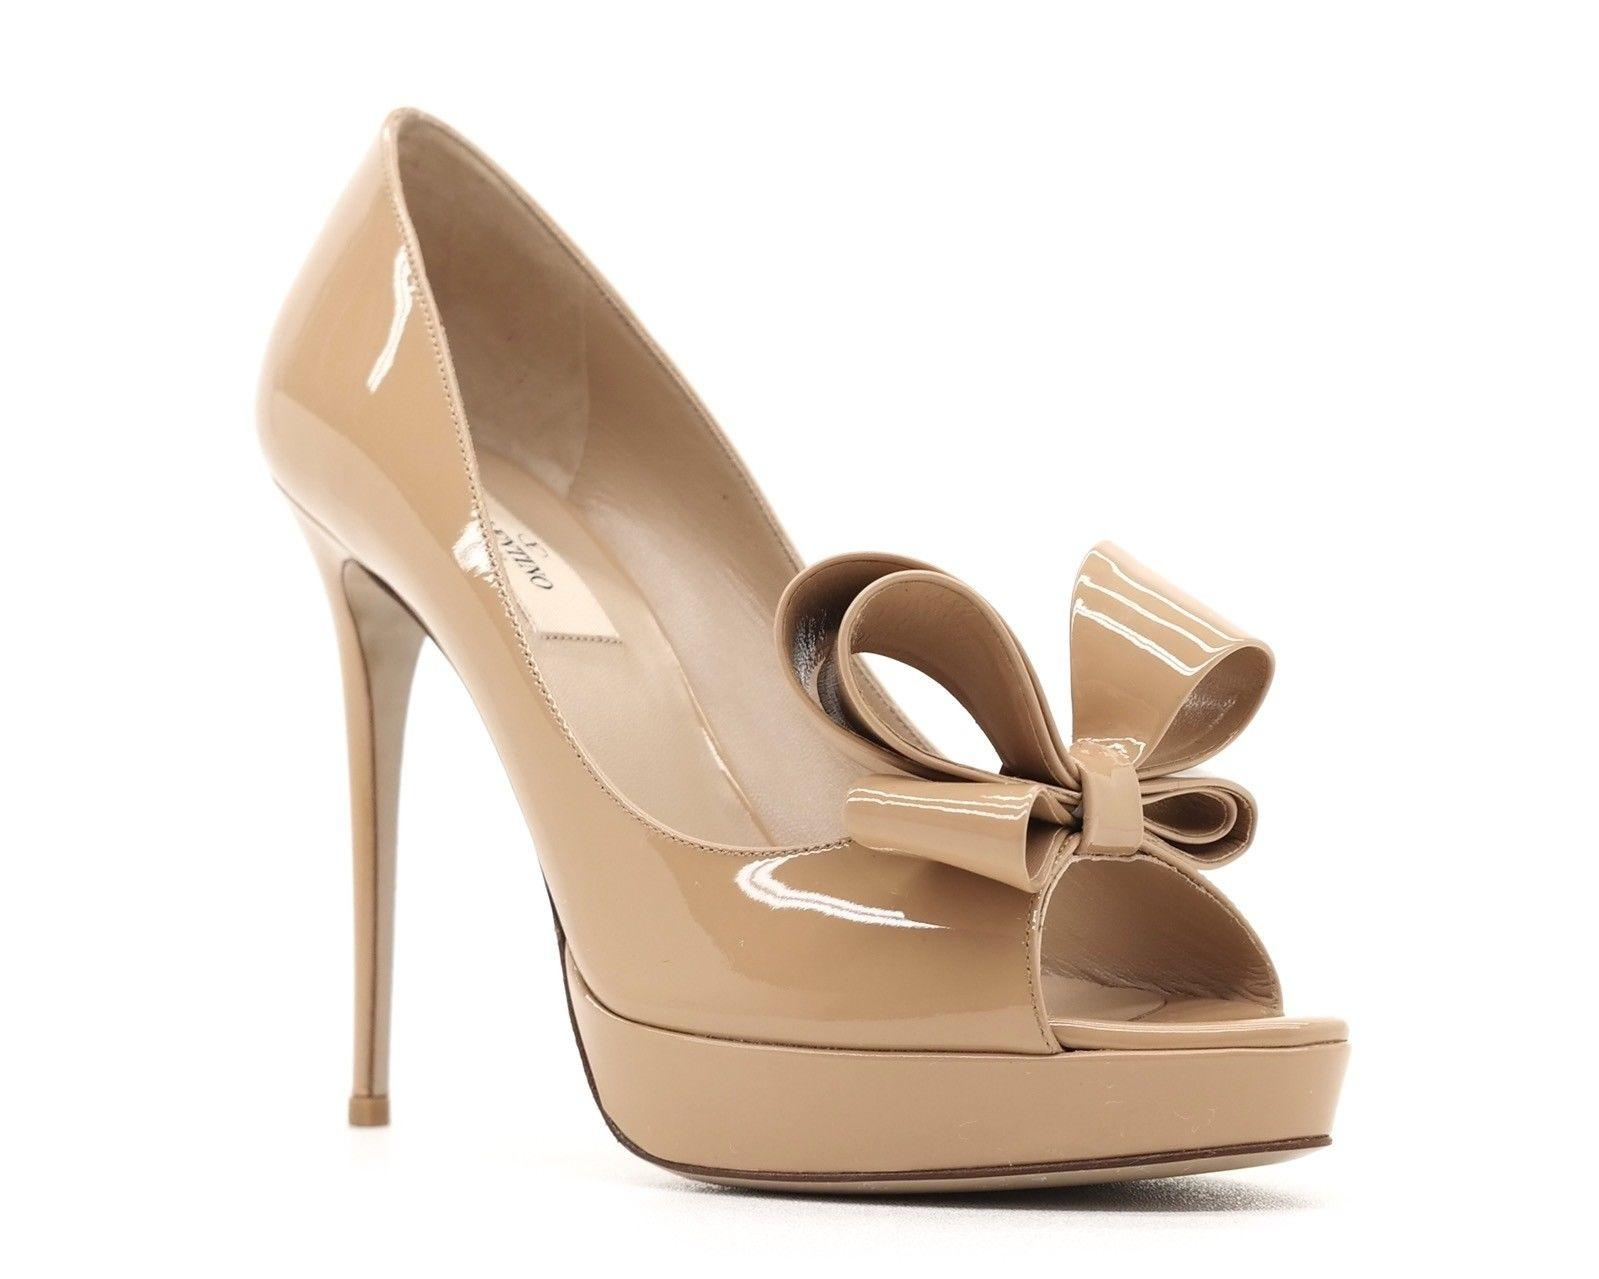 113aa9145f8b Valentino Beige Couture Bow Open Toe Pumps Size Size Size EU 39.5 (Approx.  US 9.5) Regular (M